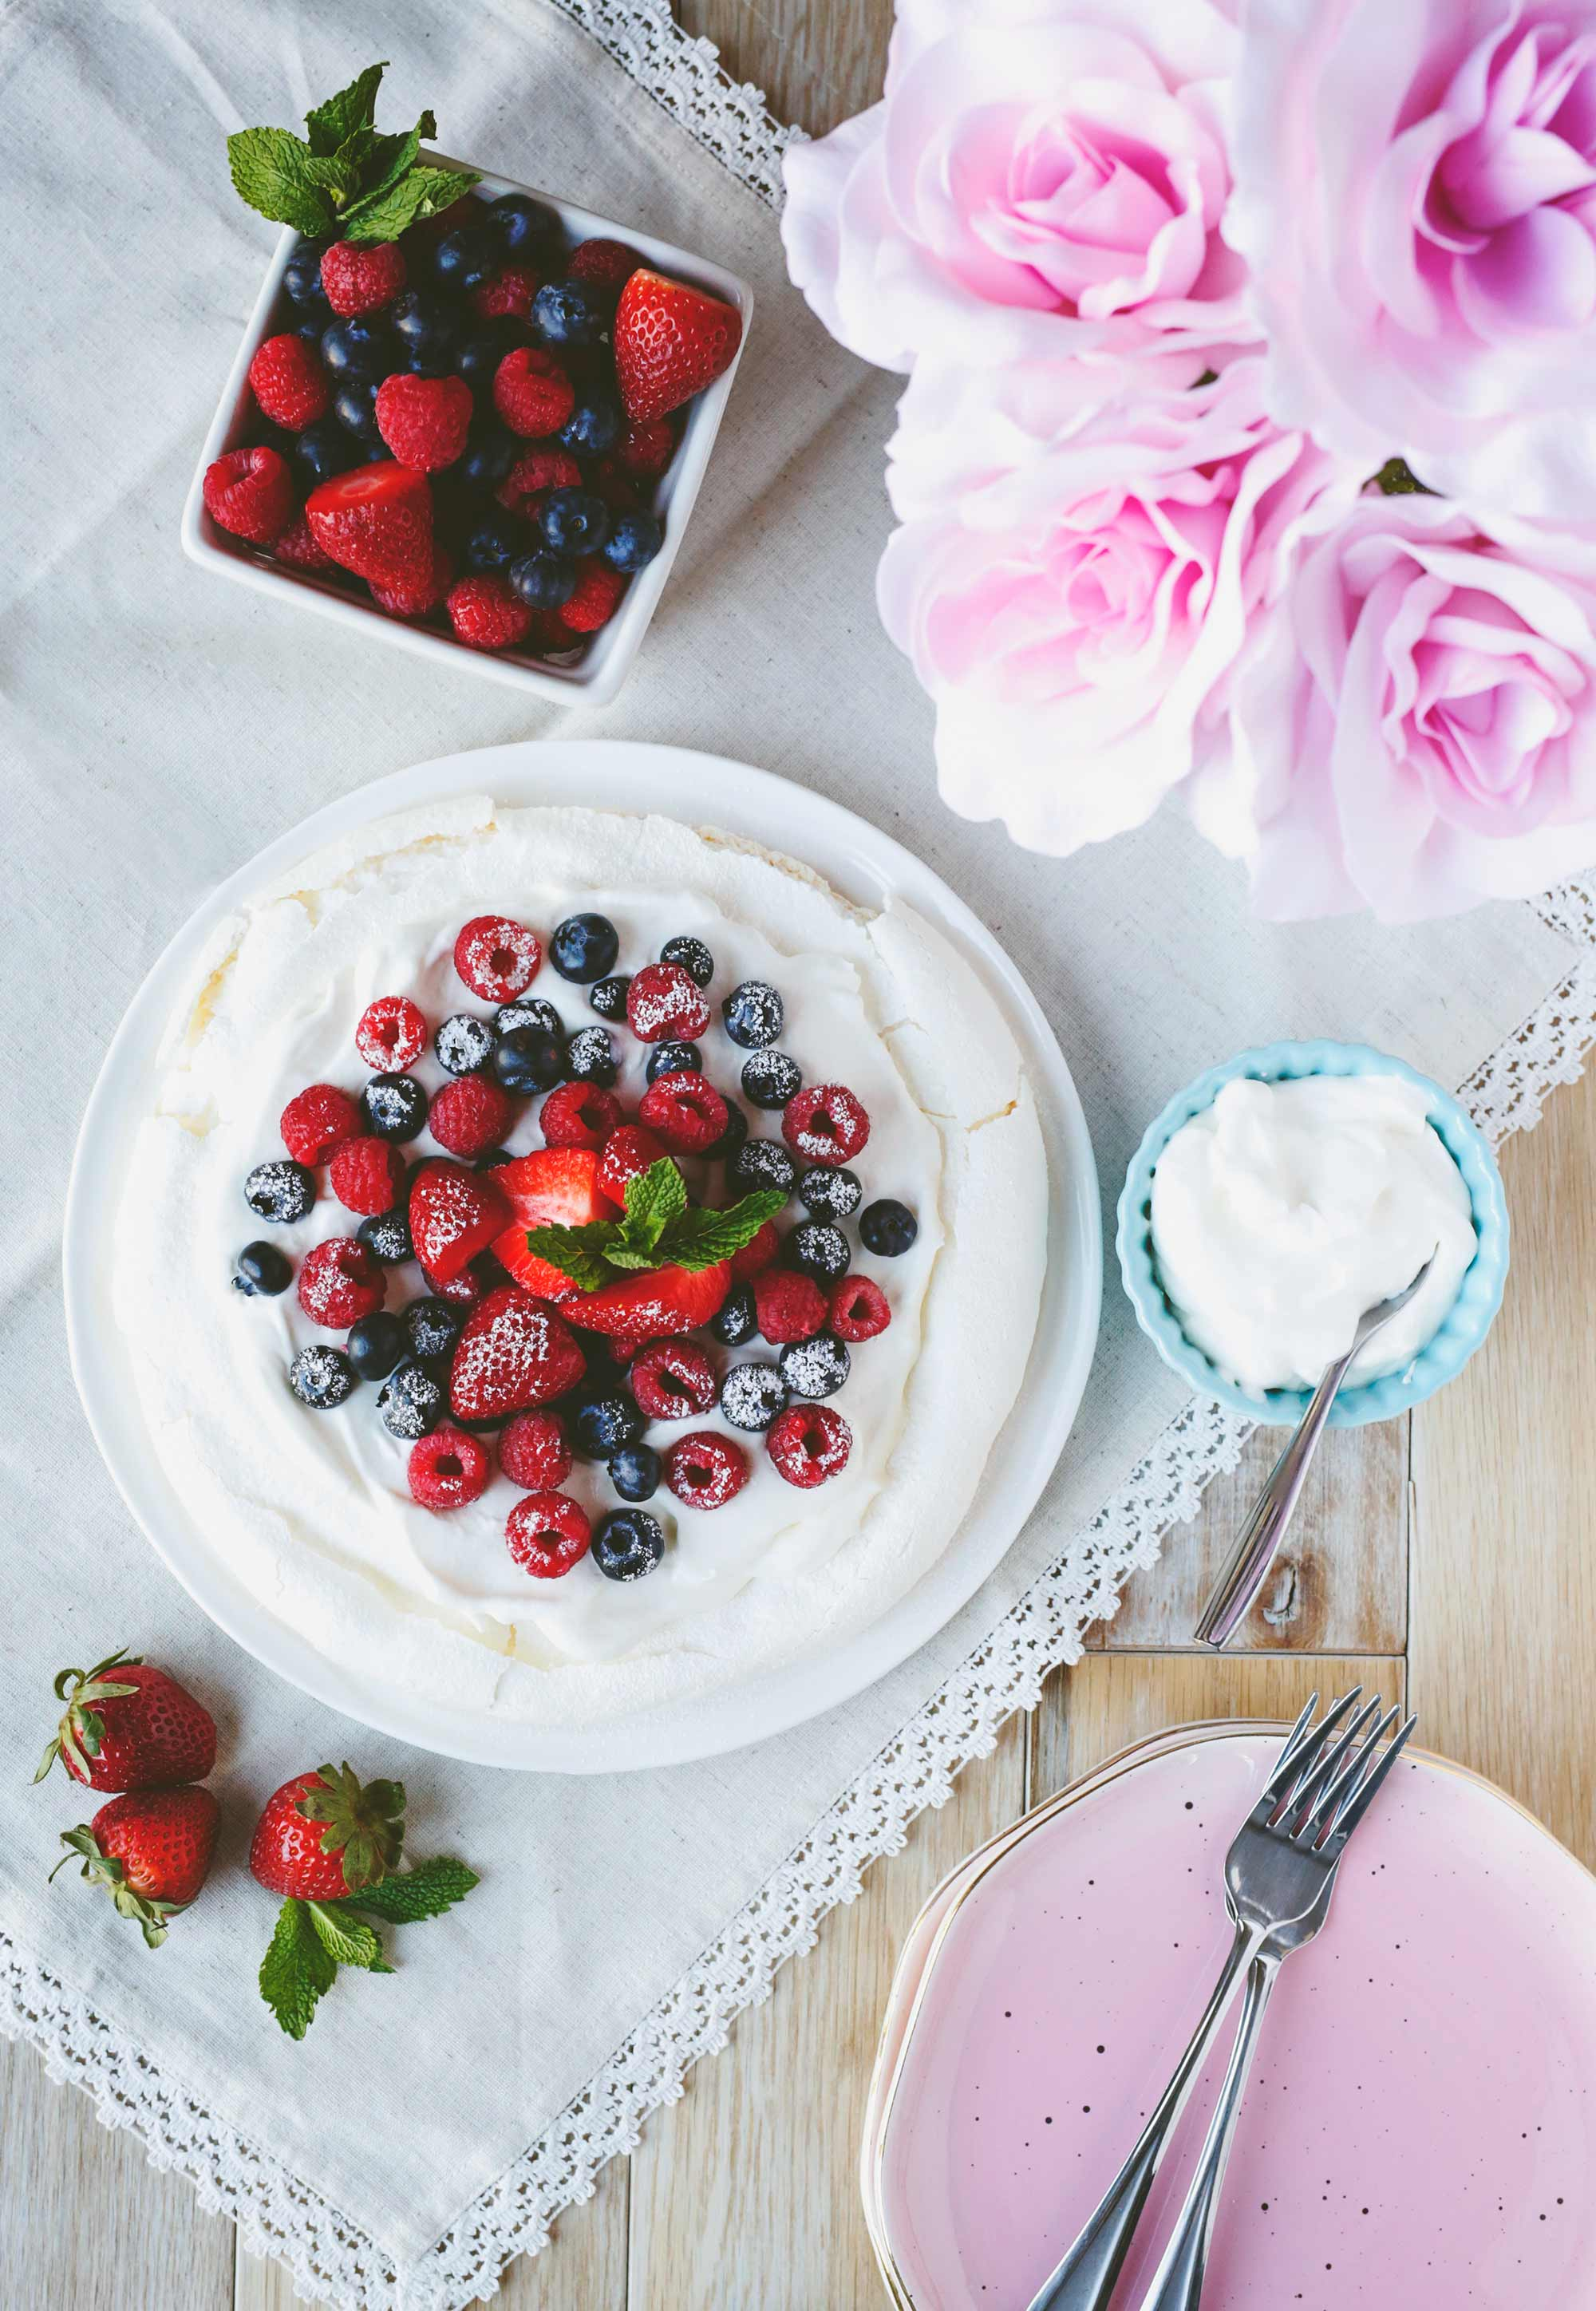 Easy Pavlova with Fresh Berries and Whipped Cream